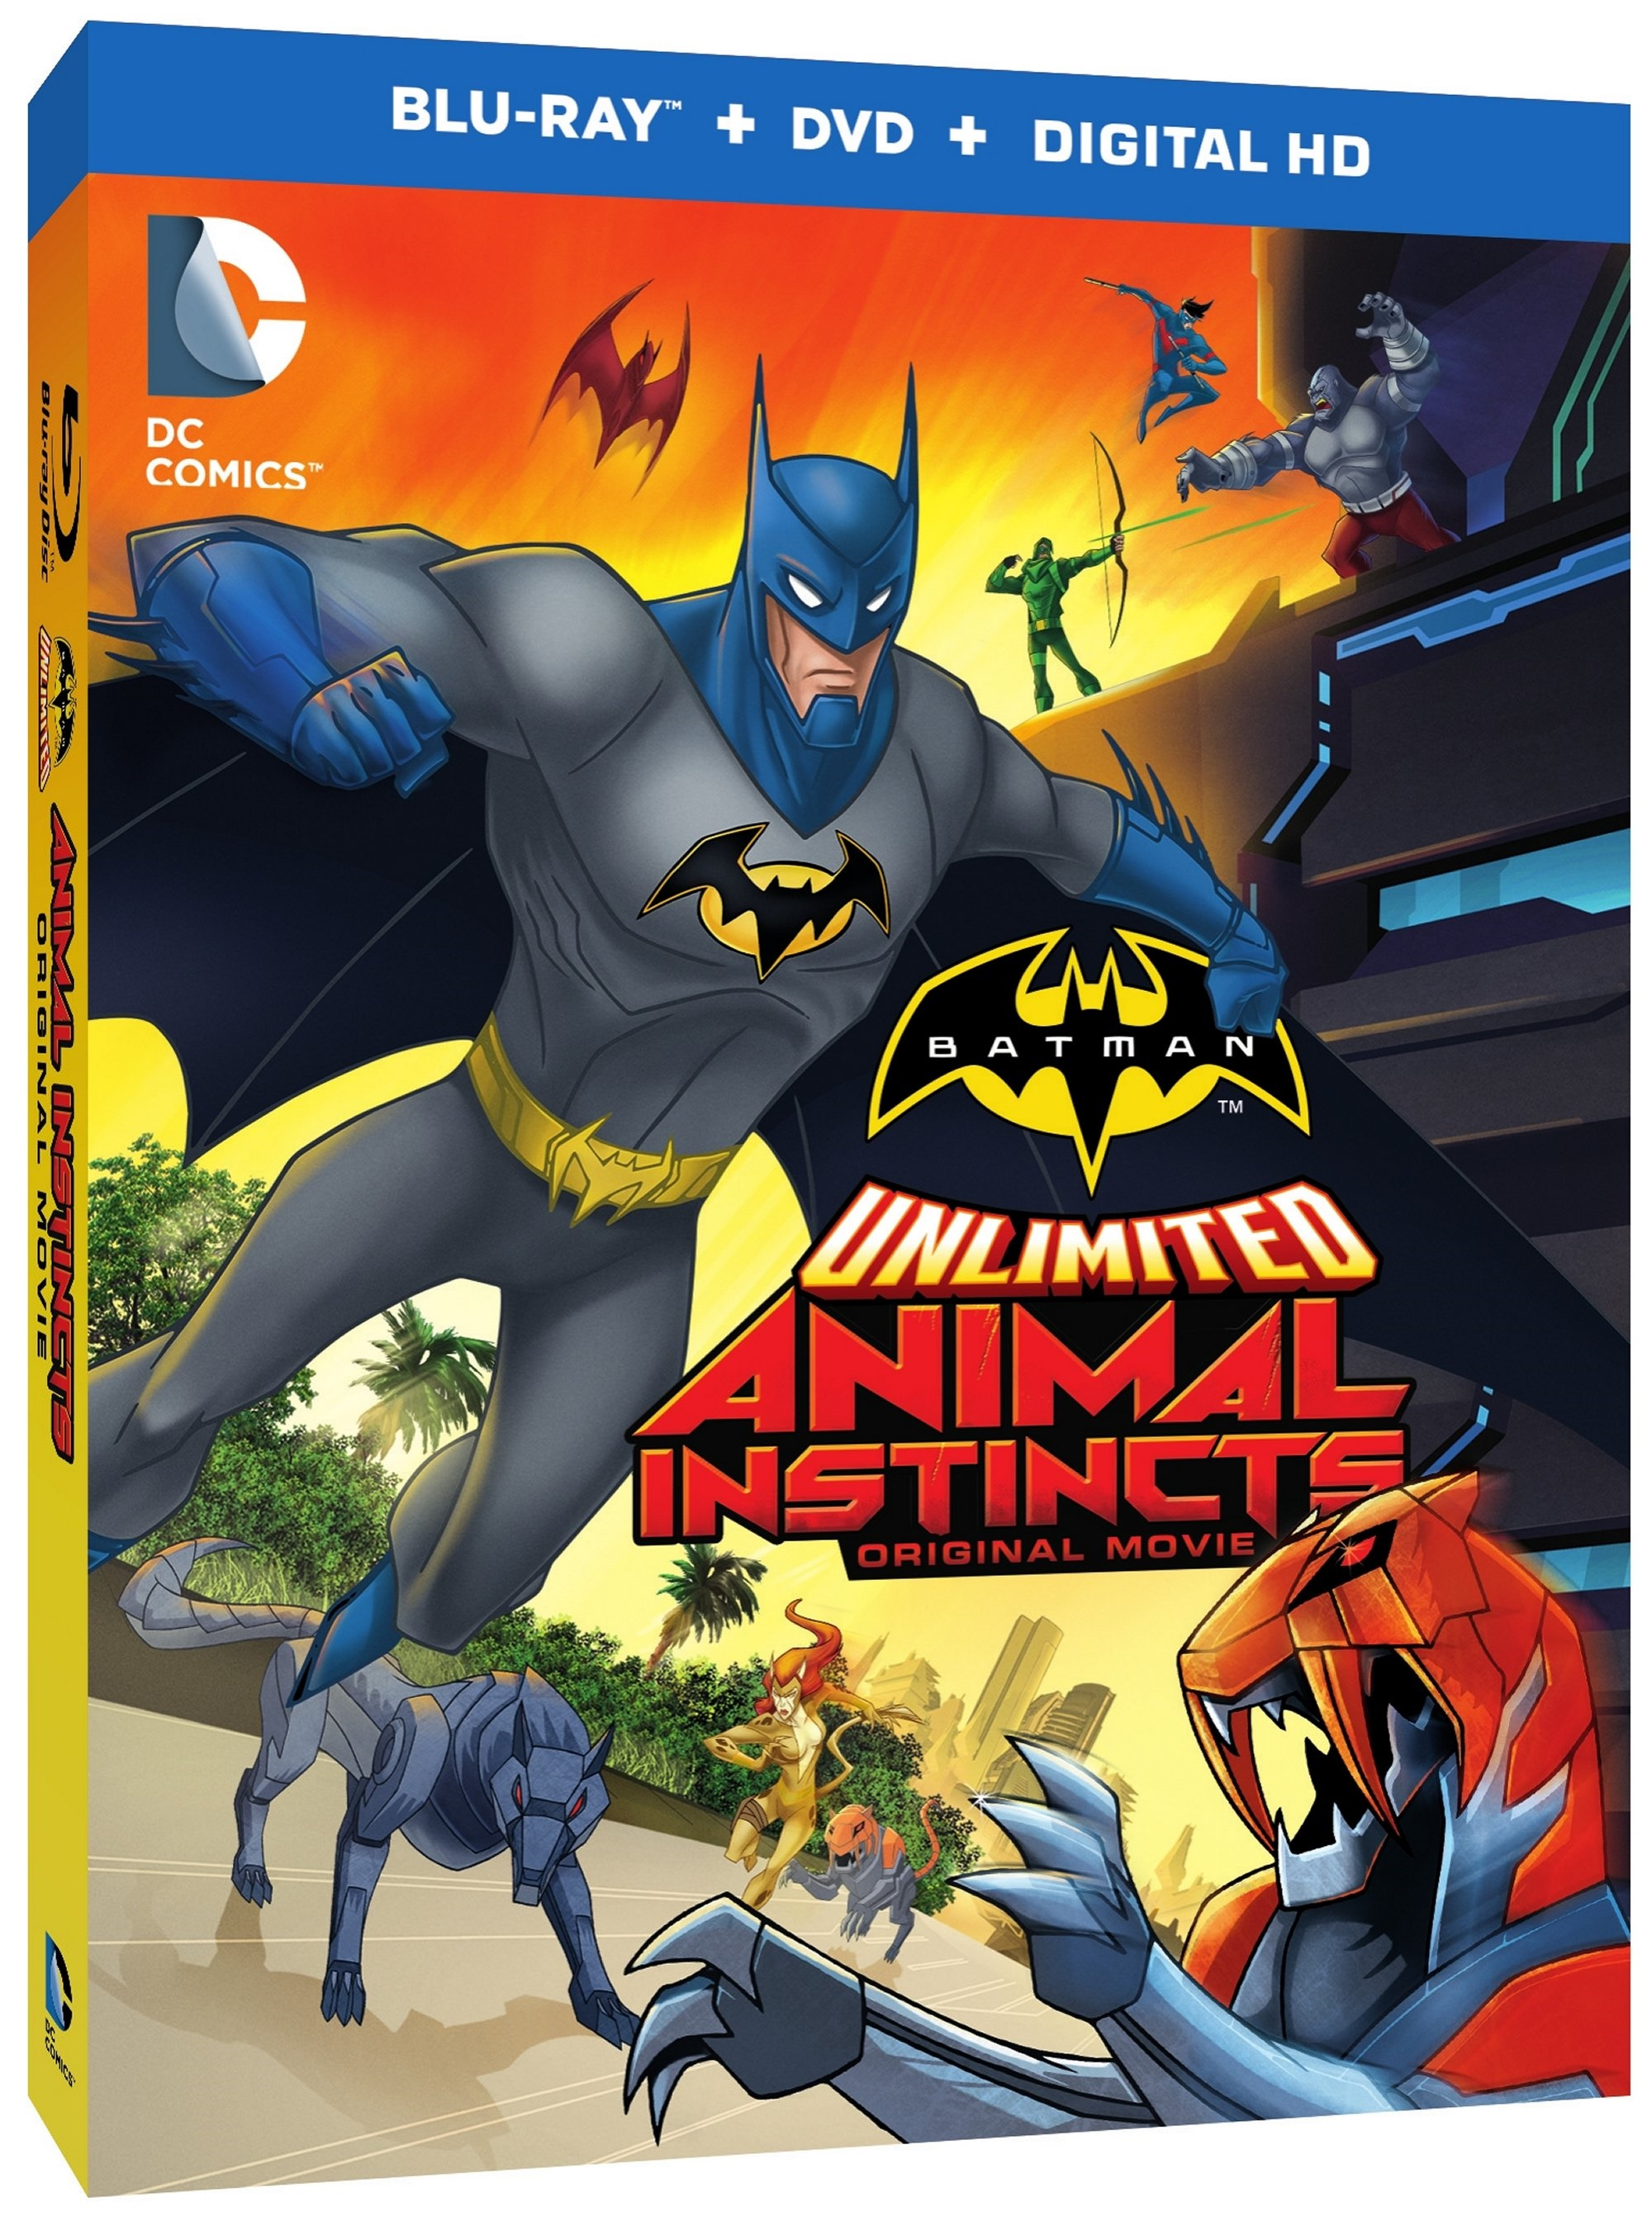 Batman Unlimited: Animal Instincts Blu-ray Review